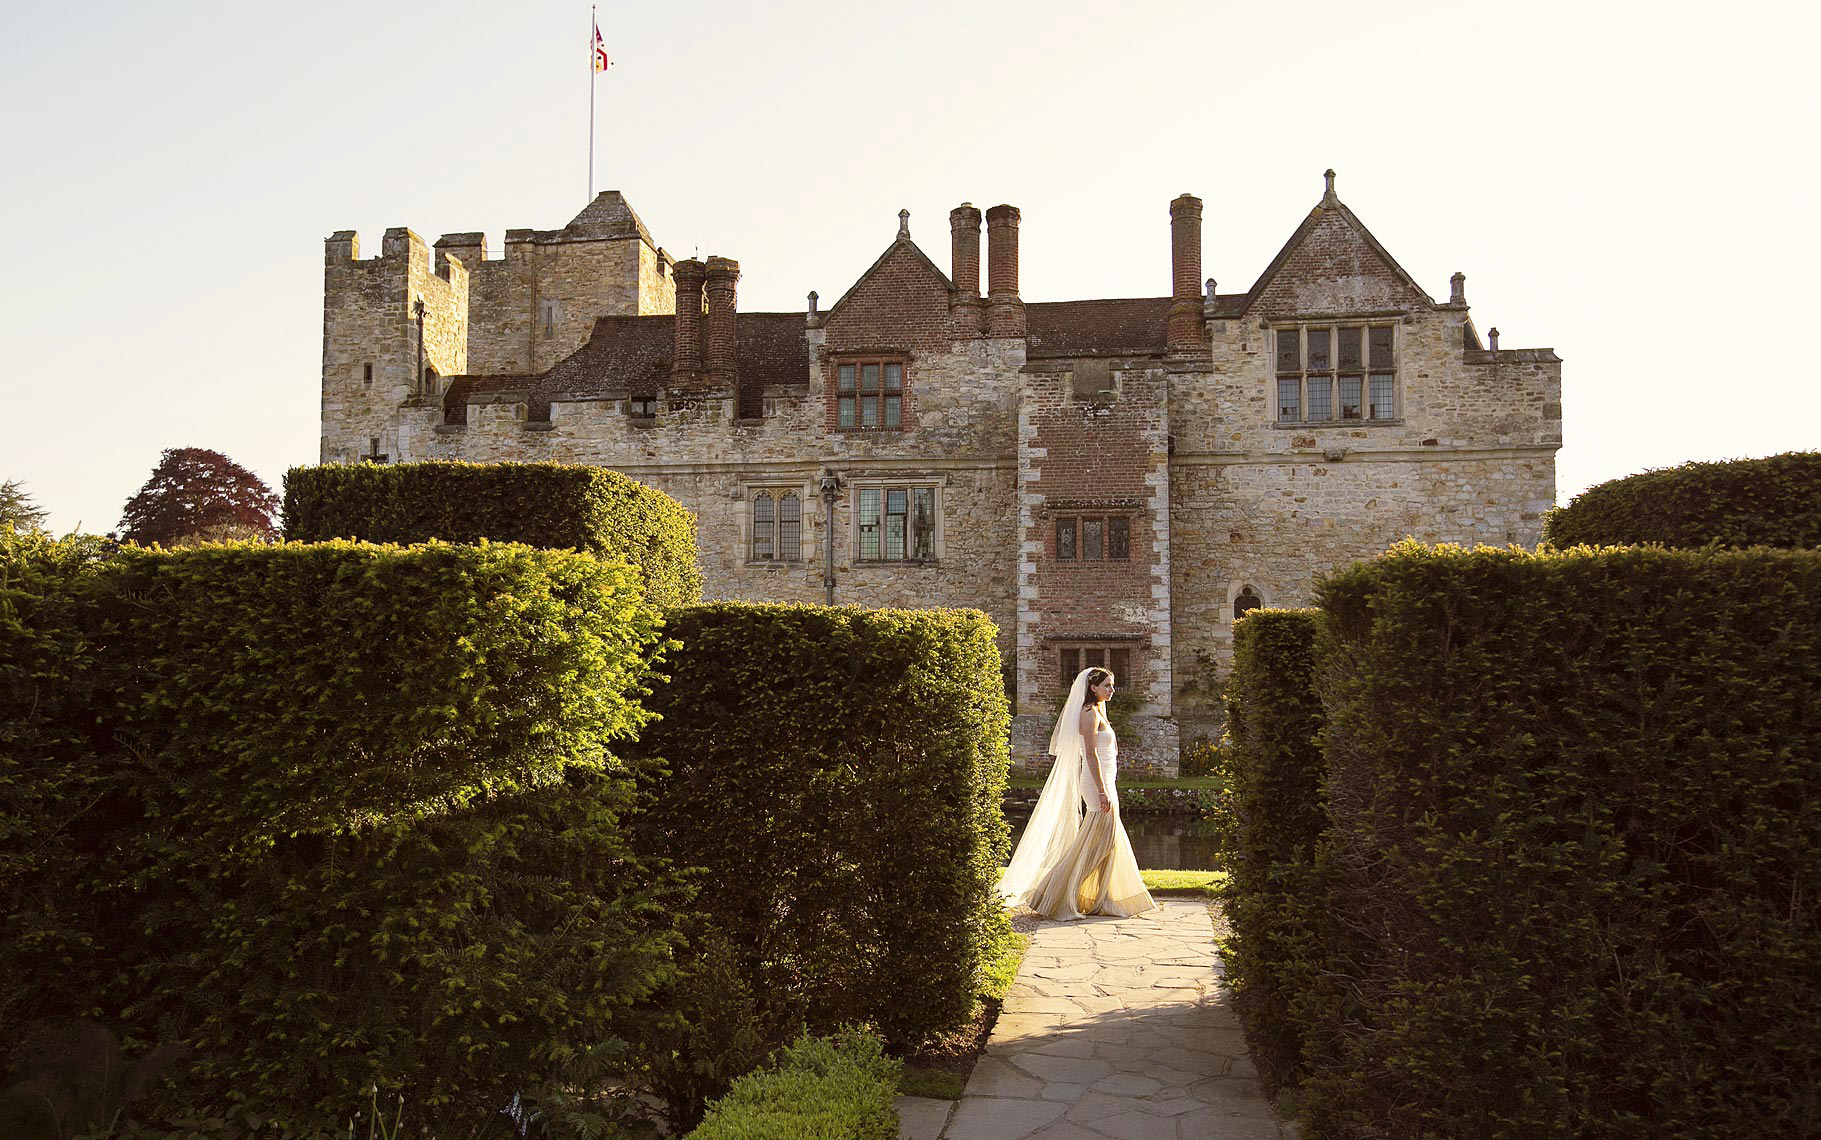 Hever-castle-wedding-photography-DUP.jpg